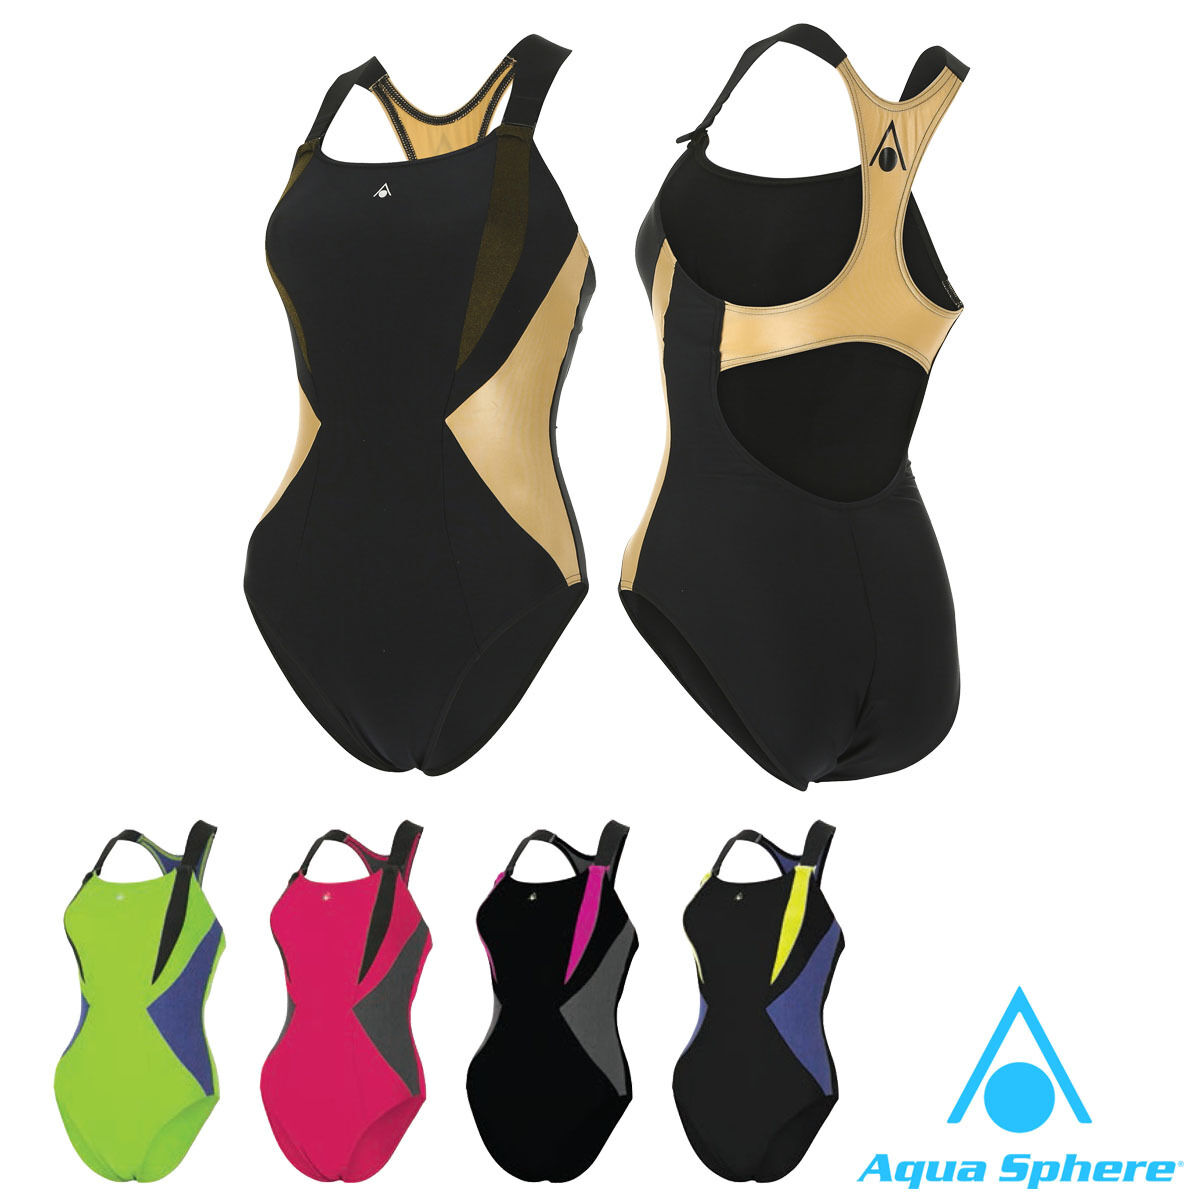 Aqua Sphere SISKIN Womens Swimming Costume Ladies Girls Swimsuit Swimwear Cozy